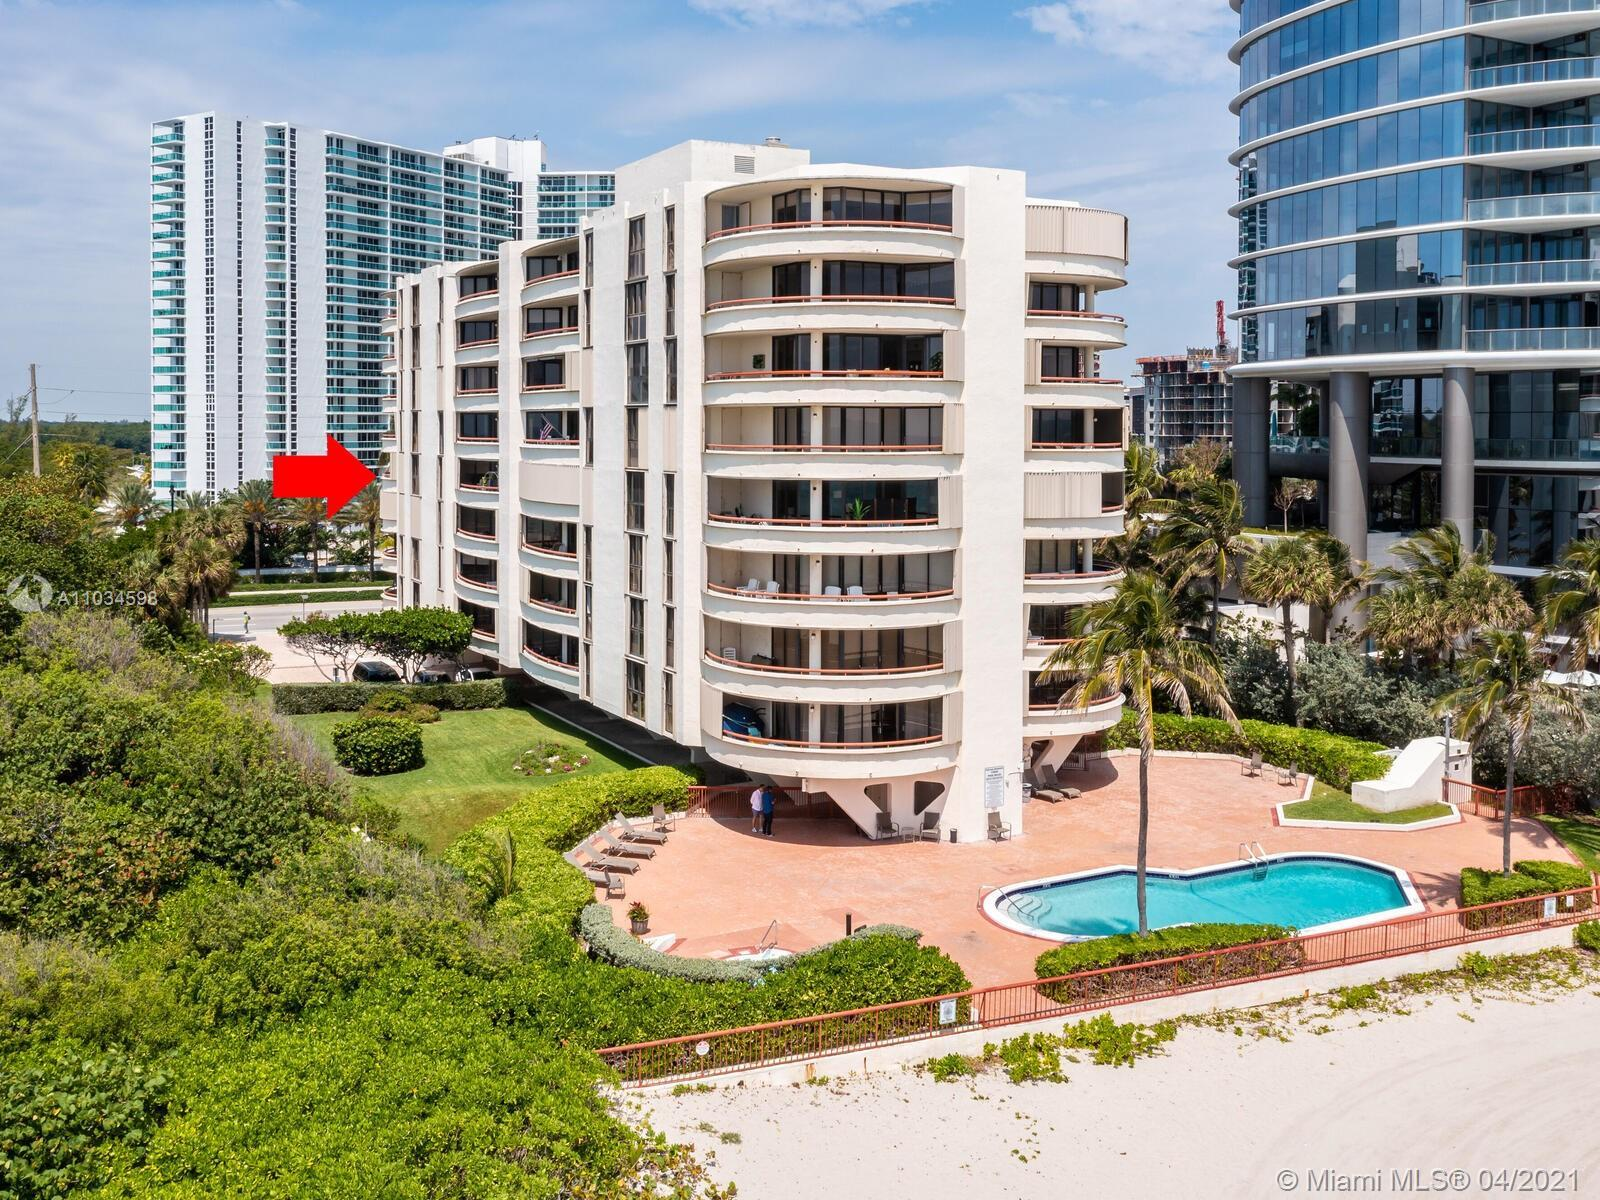 Oceanfront Boutique condo only 48 units Total , unit for sale 2/2 with city views and ocean views in